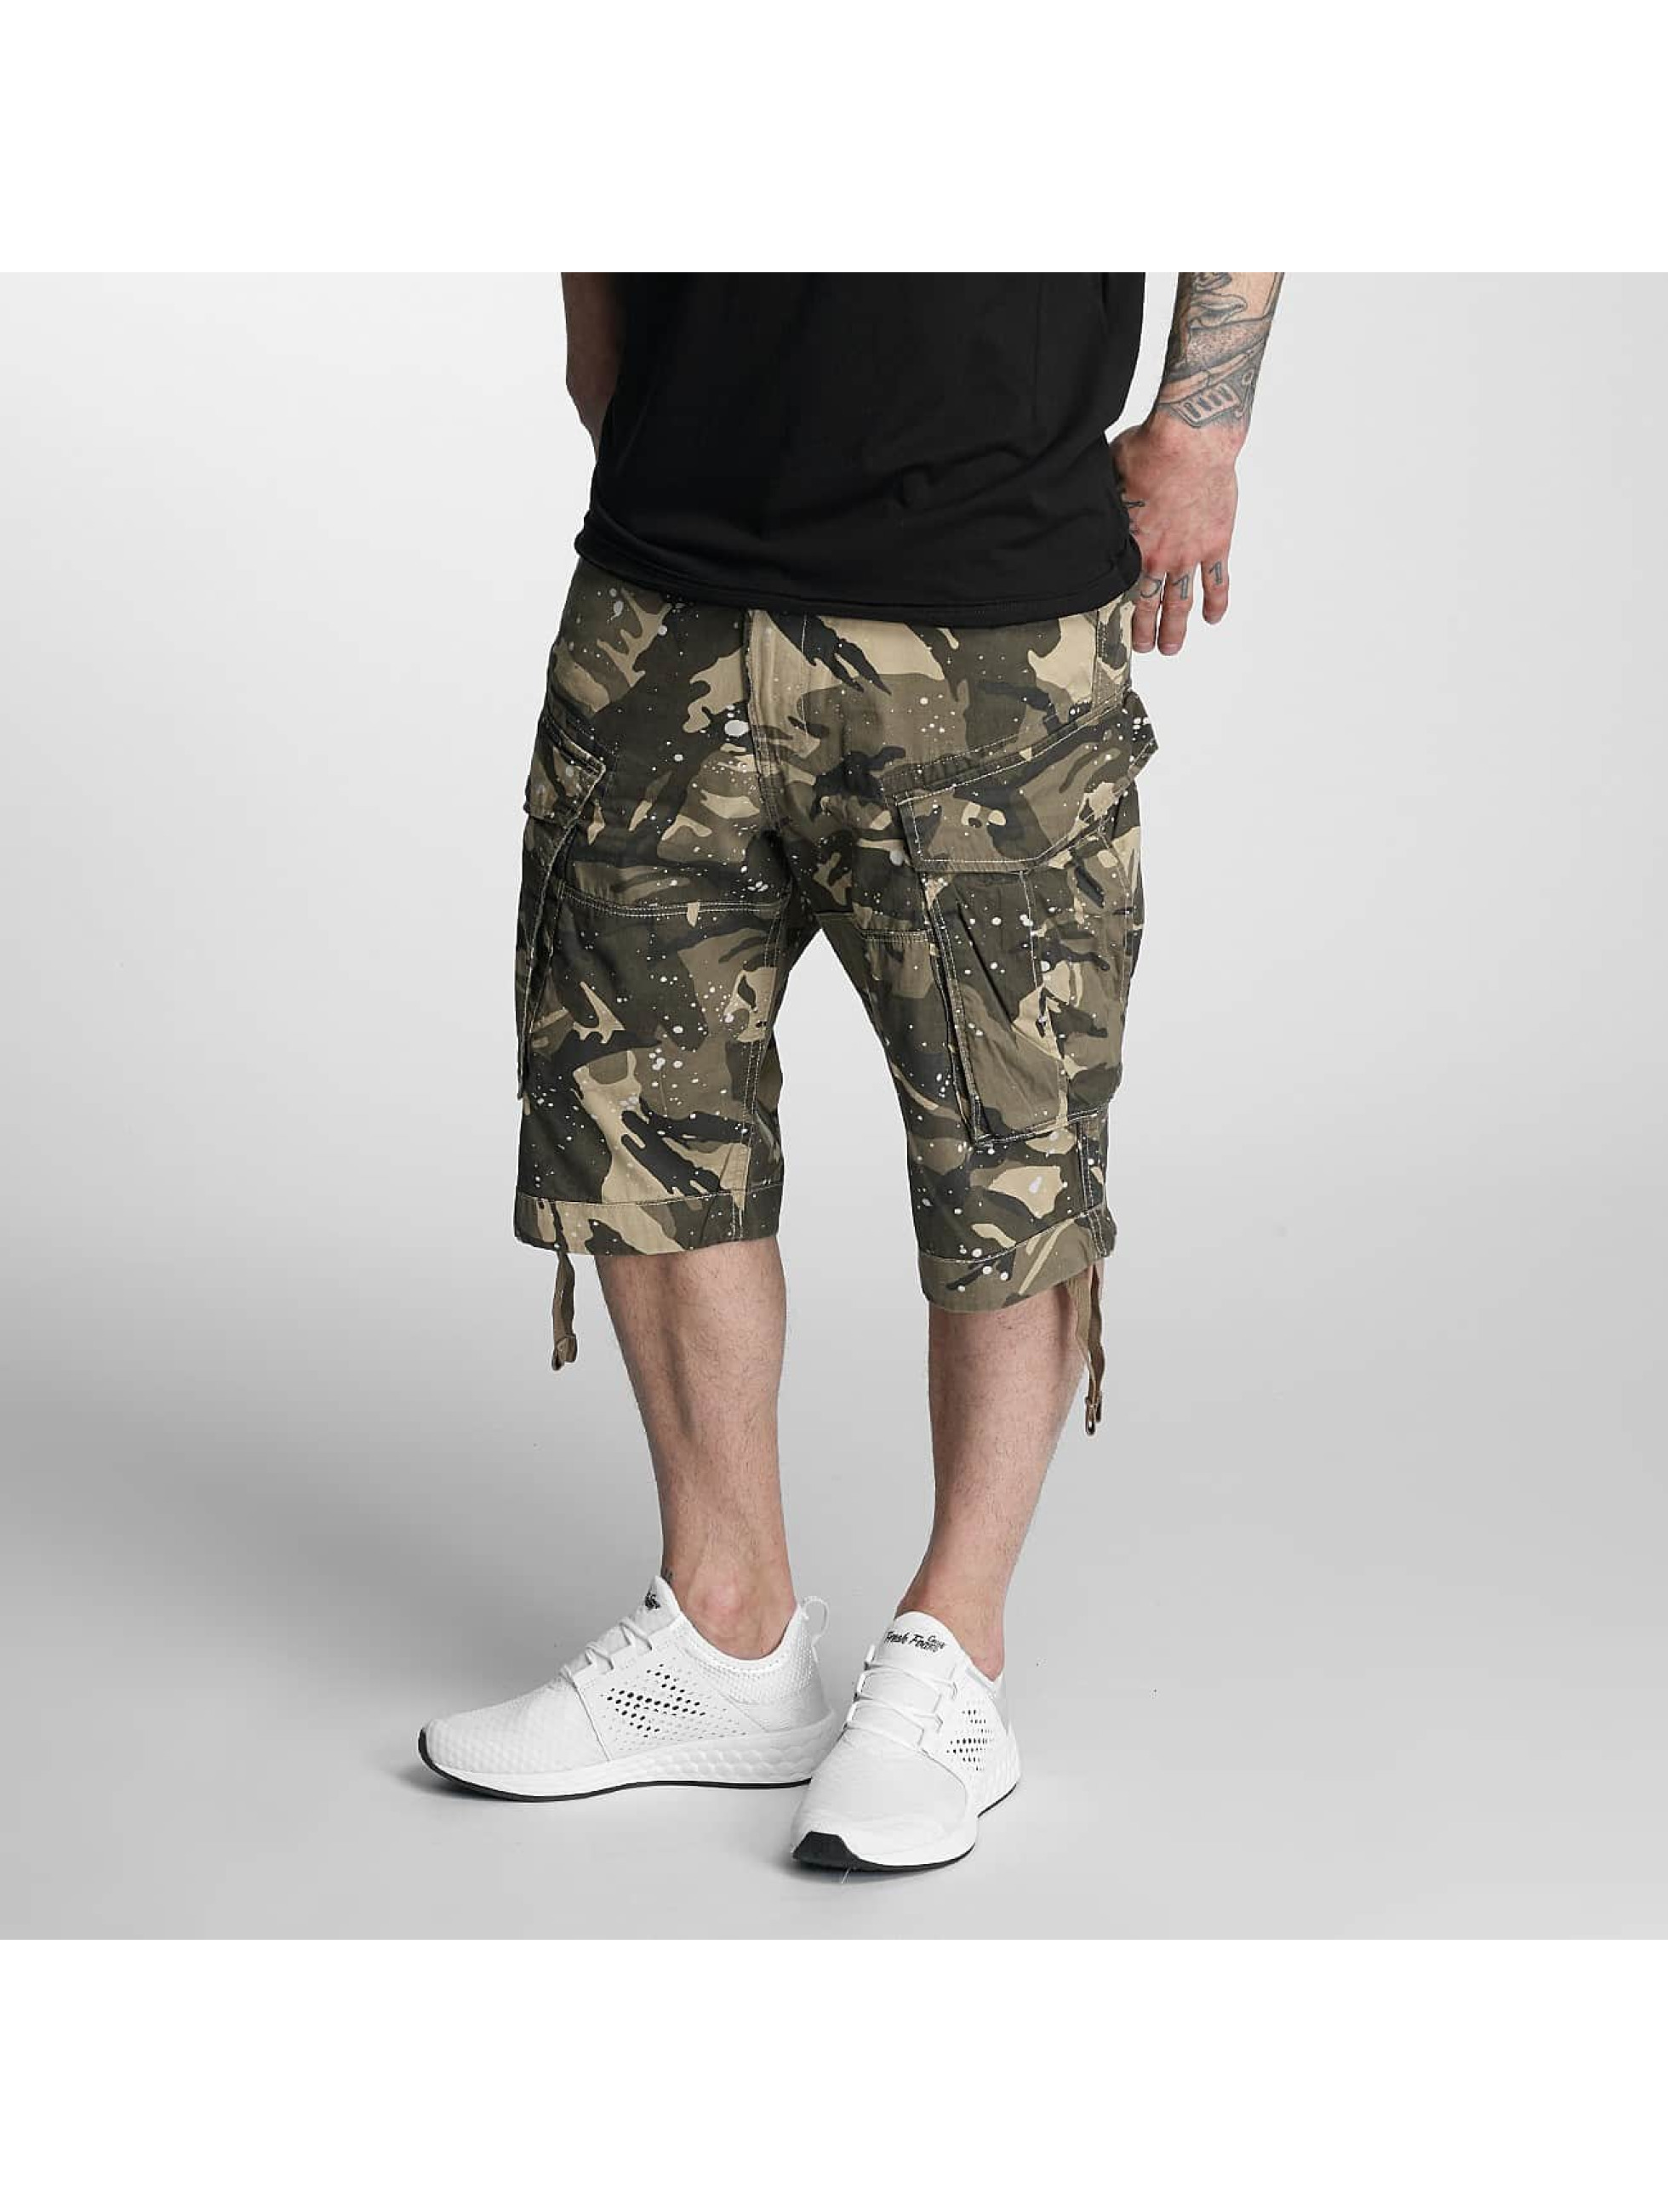 G-Star Männer Shorts Rovic Loose 1/2 in camouflage